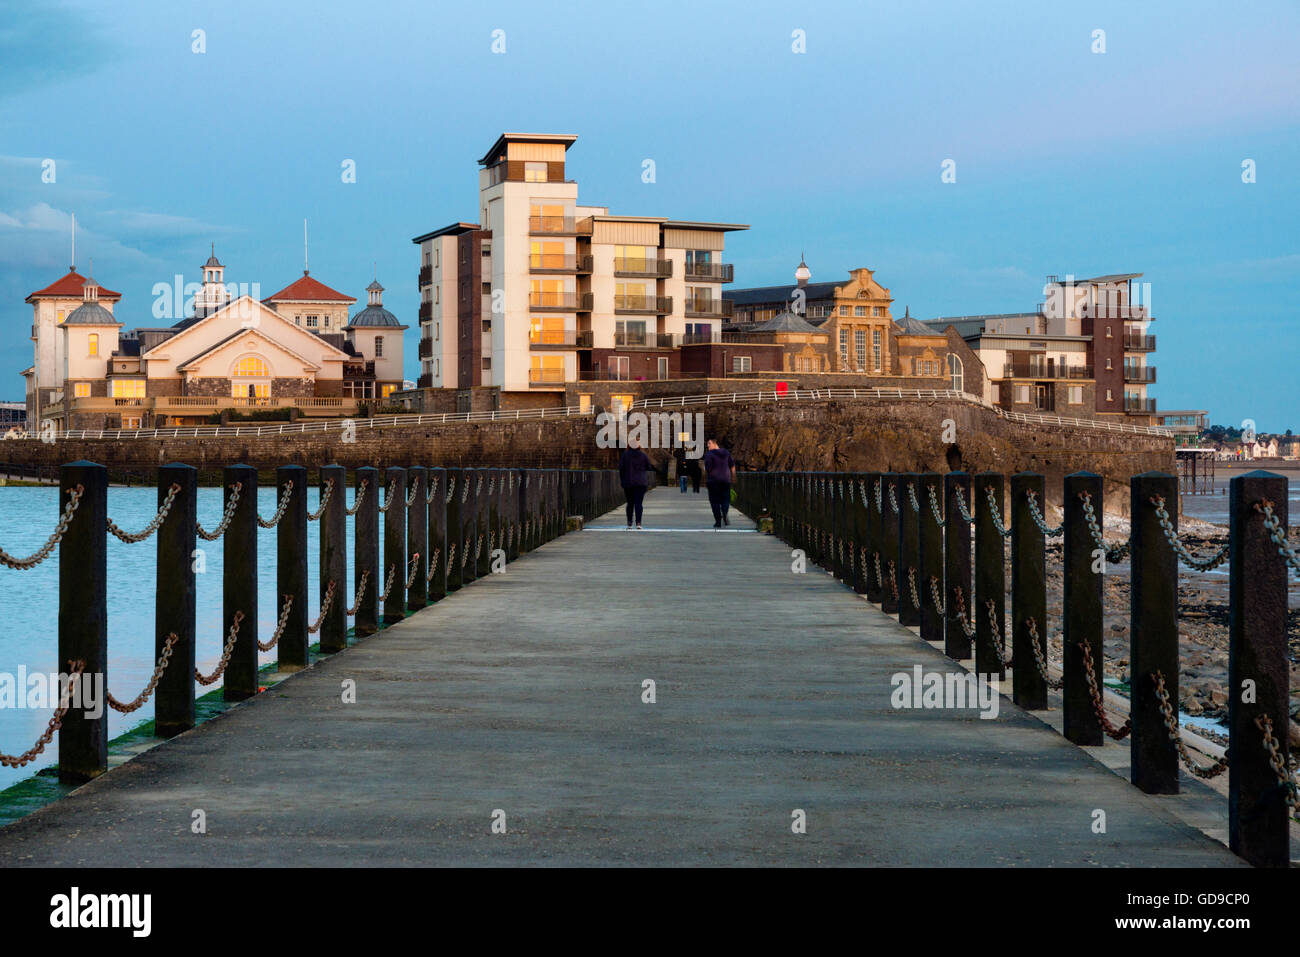 Marine lake at Weston-Super-Mare, UK. - Stock Image